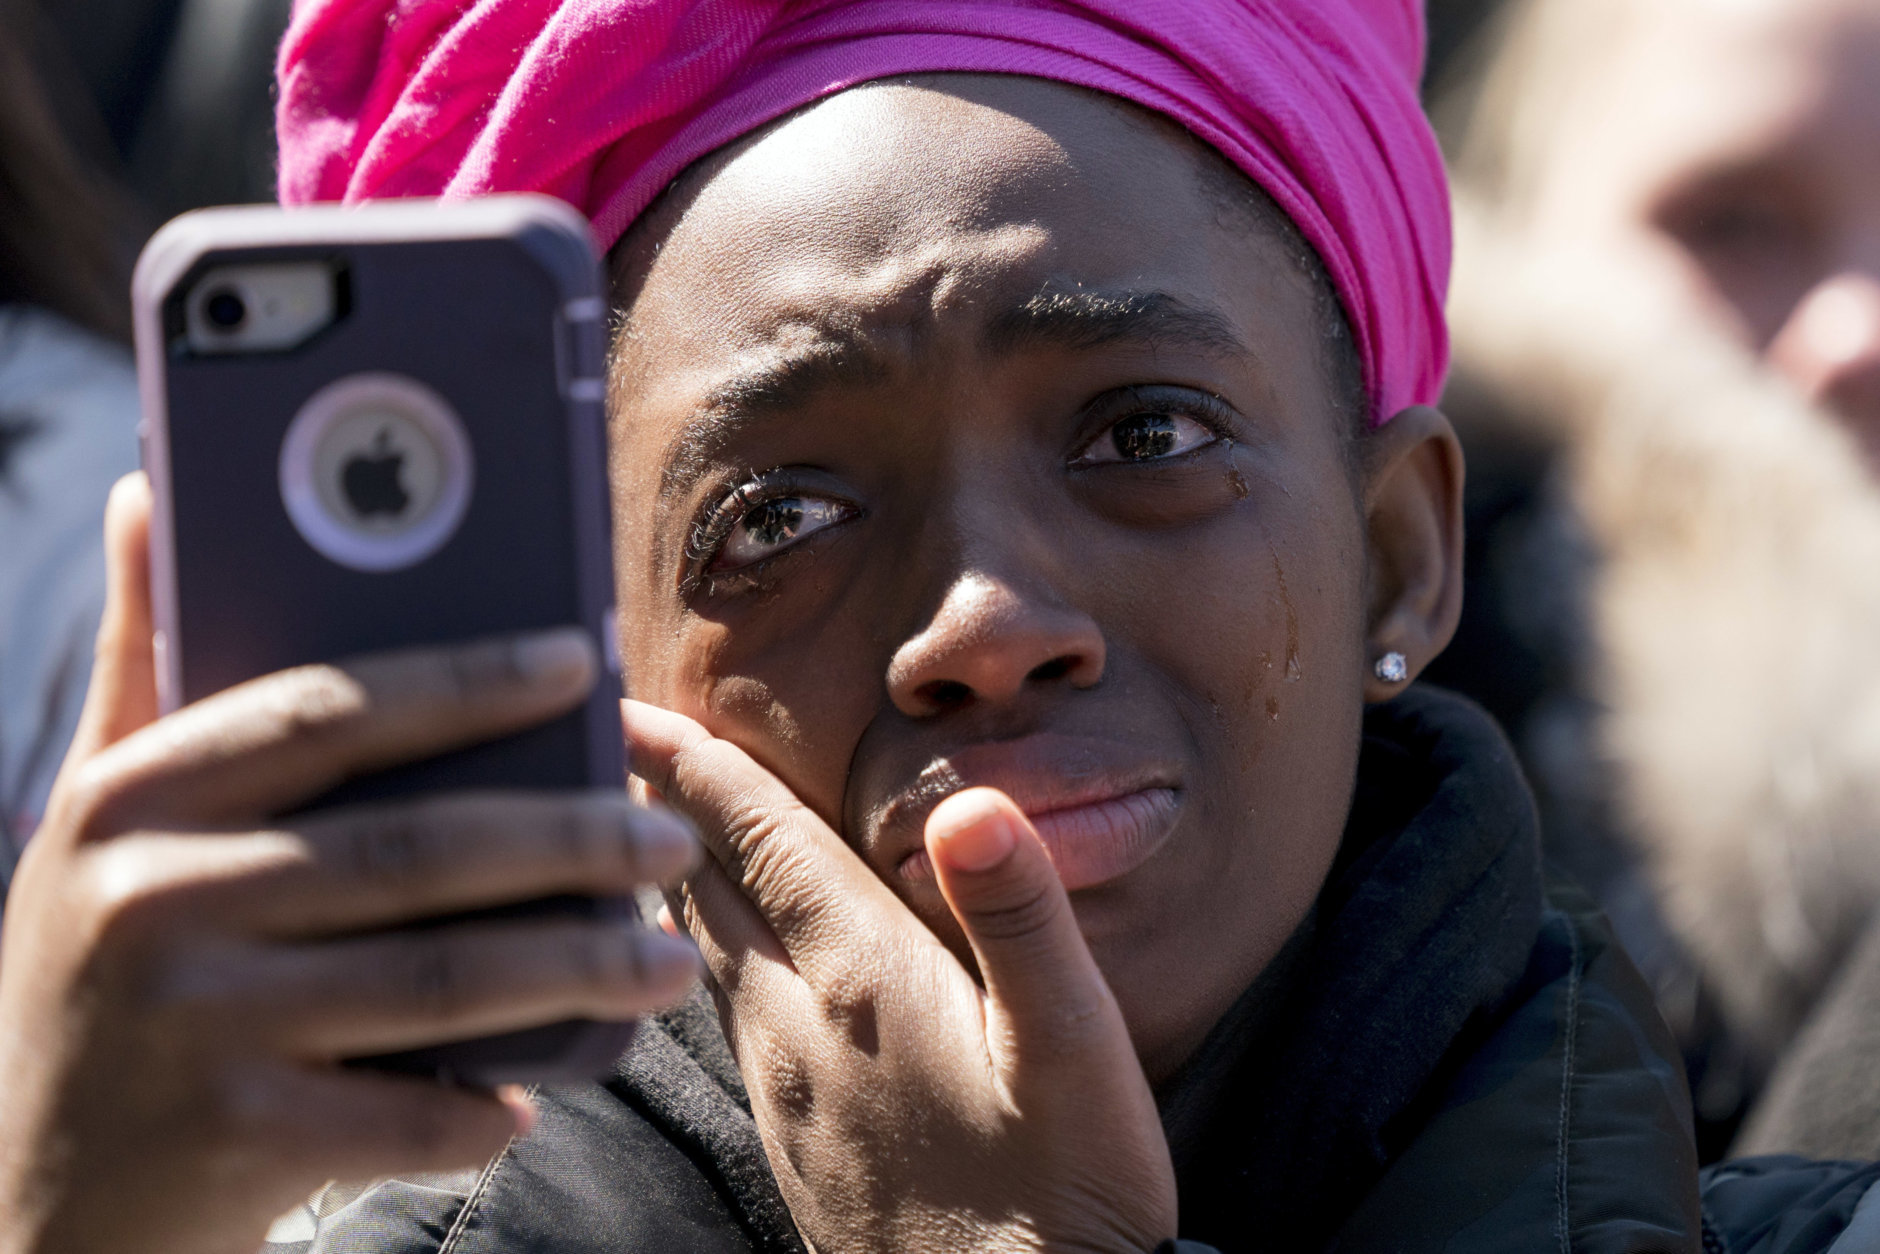 """A member of the audience becomes emotional as Zion Kelly, of Washington, who lost his twin brother Zaire to gun violence in the nation's capital in 2017, speaks during the """"March for Our Lives"""" rally in support of gun control in Washington, Saturday, March 24, 2018. (AP Photo/Andrew Harnik)"""